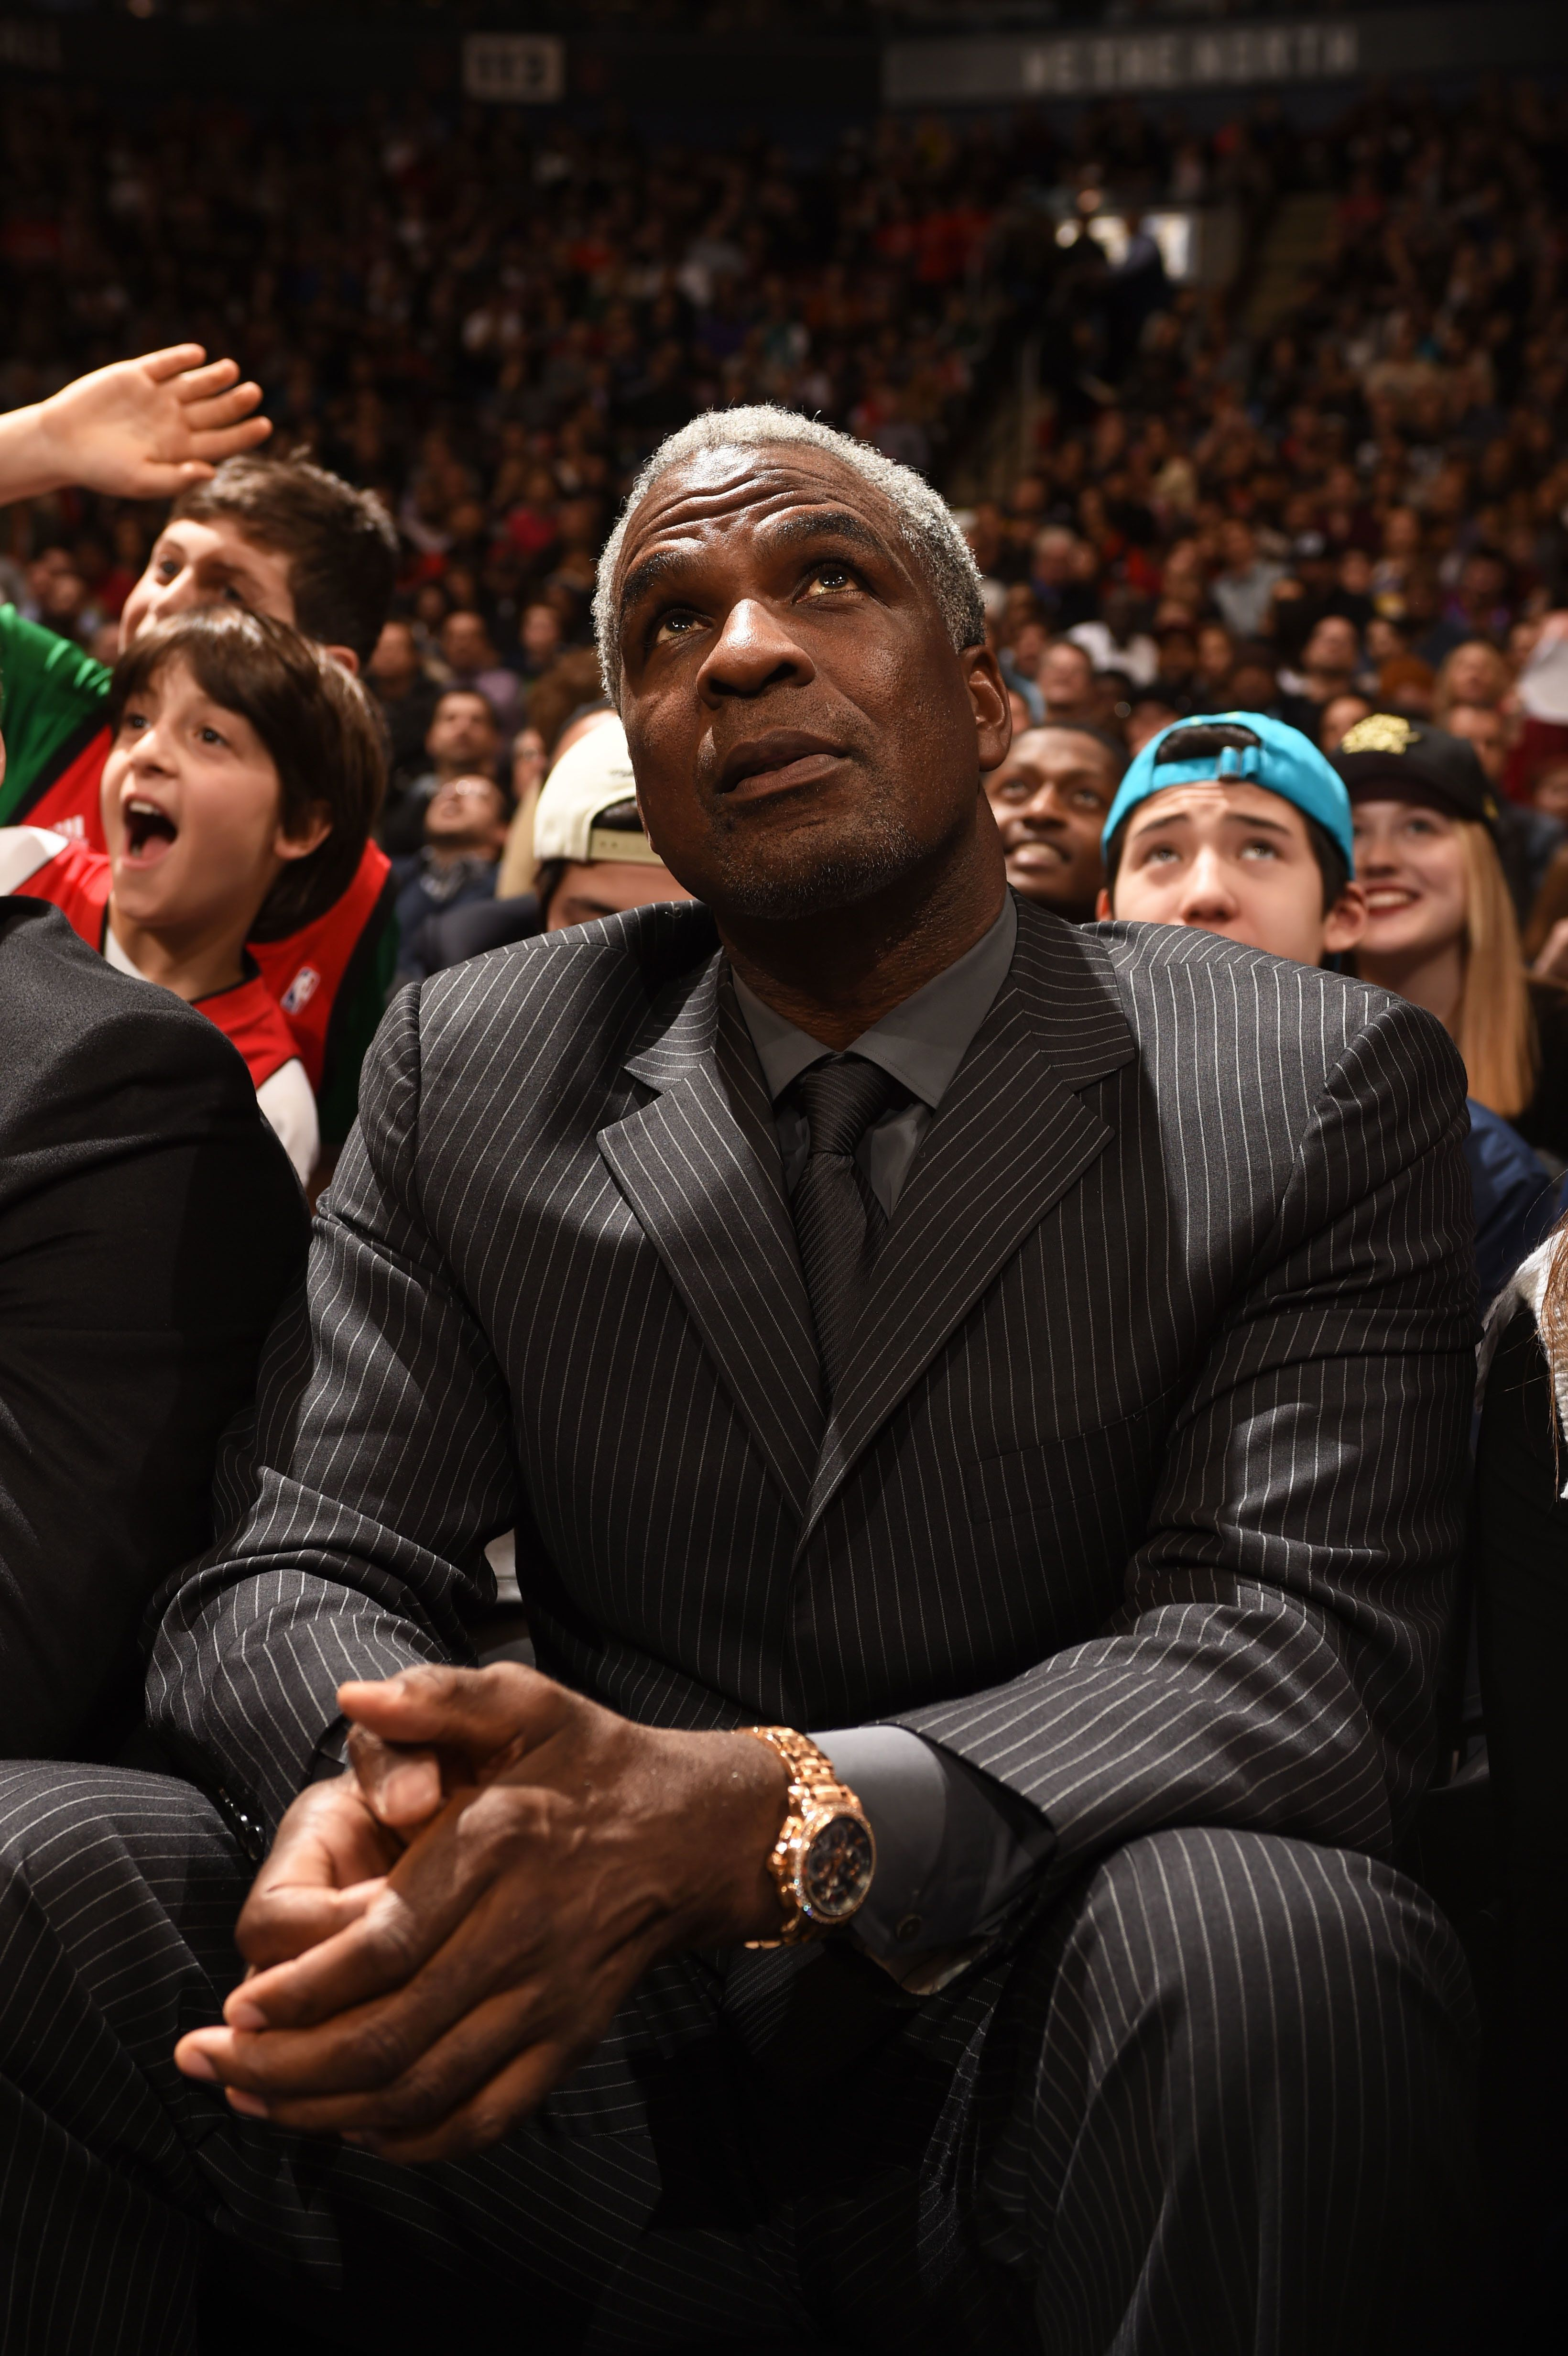 TORONTO, CANADA - March 13 : Former NBA player Charles Oakley during the game between the Miami Heat and Toronto Raptors on March 13, 2015 at the Air Canada Centre in Toronto, Ontario, Canada.  NOTE TO USER: User expressly acknowledges and agrees that, by downloading and or using this Photograph, user is consenting to the terms and conditions of the Getty Images License Agreement.  Mandatory Copyright Notice: Copyright 2015 NBAE (Photo by Ron Turenne/NBAE via Getty Images)